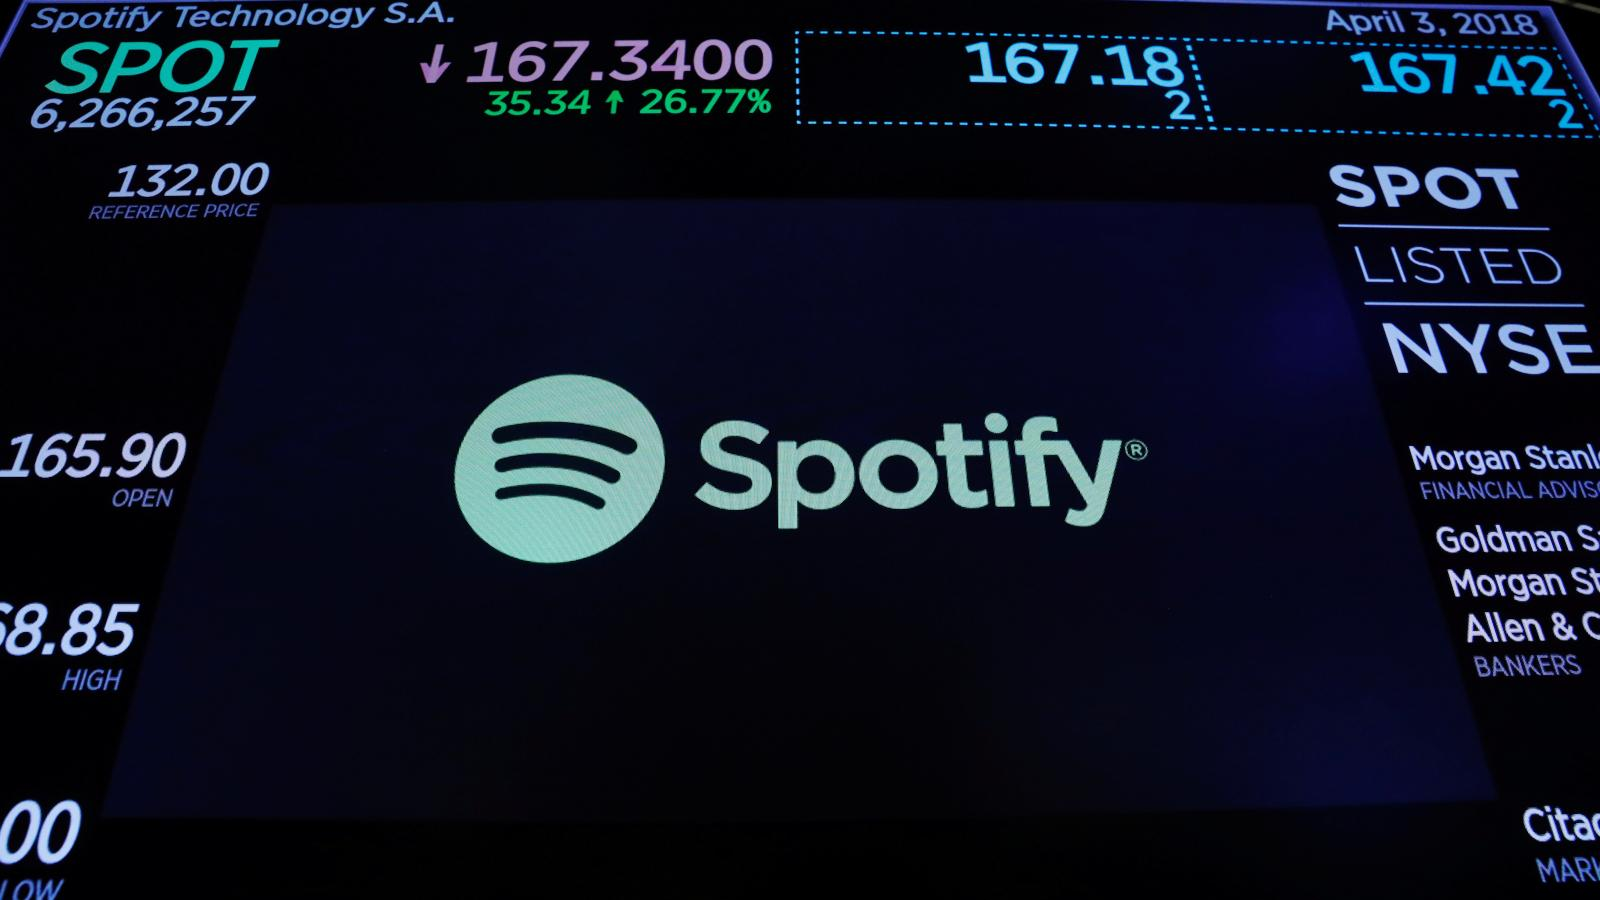 Spotify's IPO confirms it is worth more than HP, General